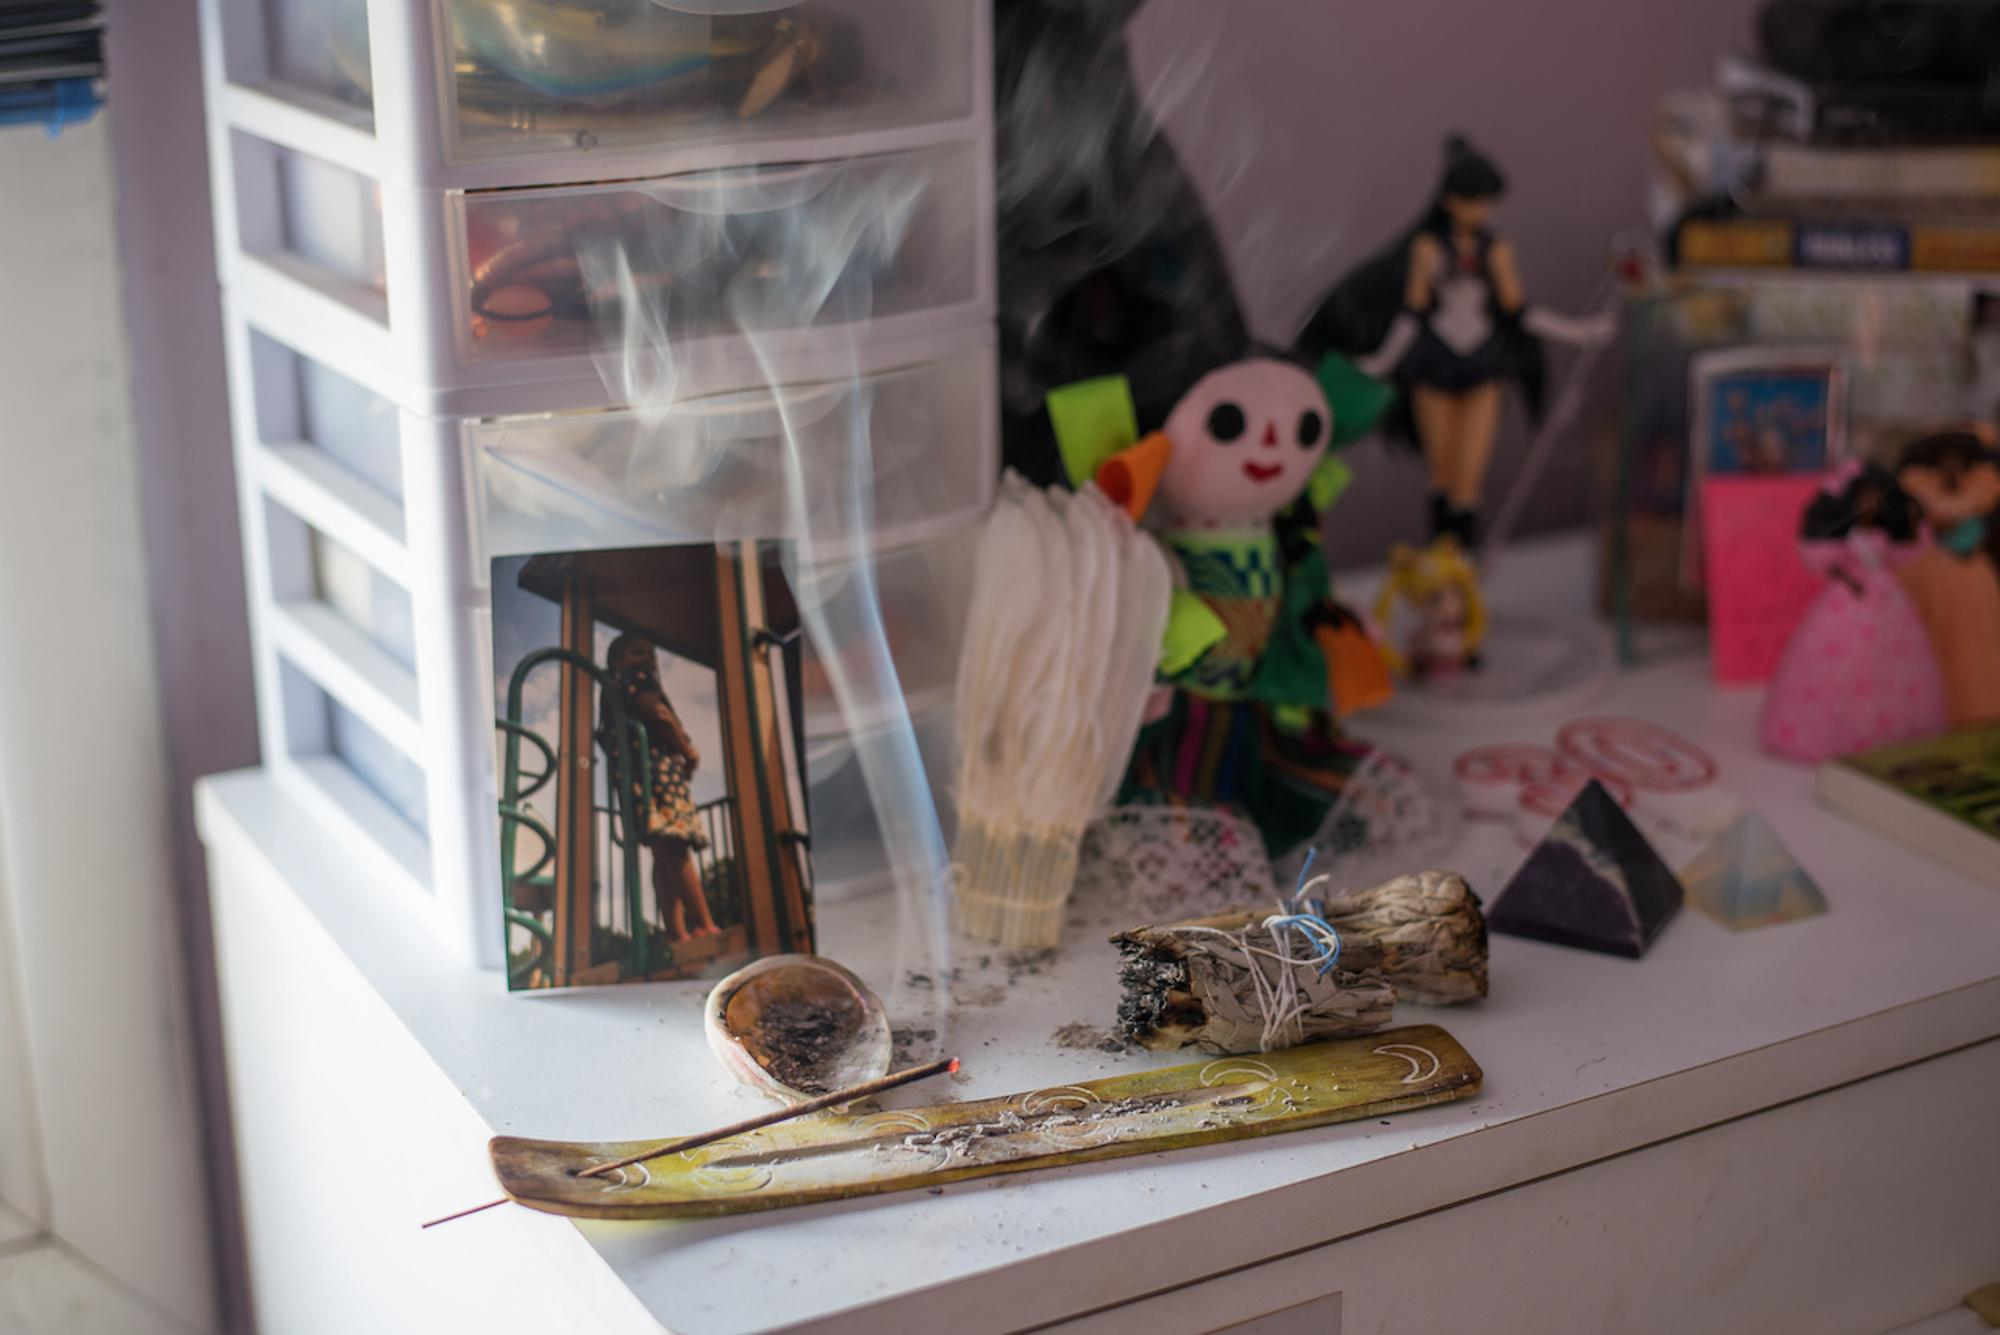 A very important component in my spiritual and purifying practices are lighting incense and burning sage/smudging in order to cleanse my body, environment and spirit. This is done in the privacy of my bedroom in Southfield, Mich.Taken by Rachel Elise Thomas for WDET